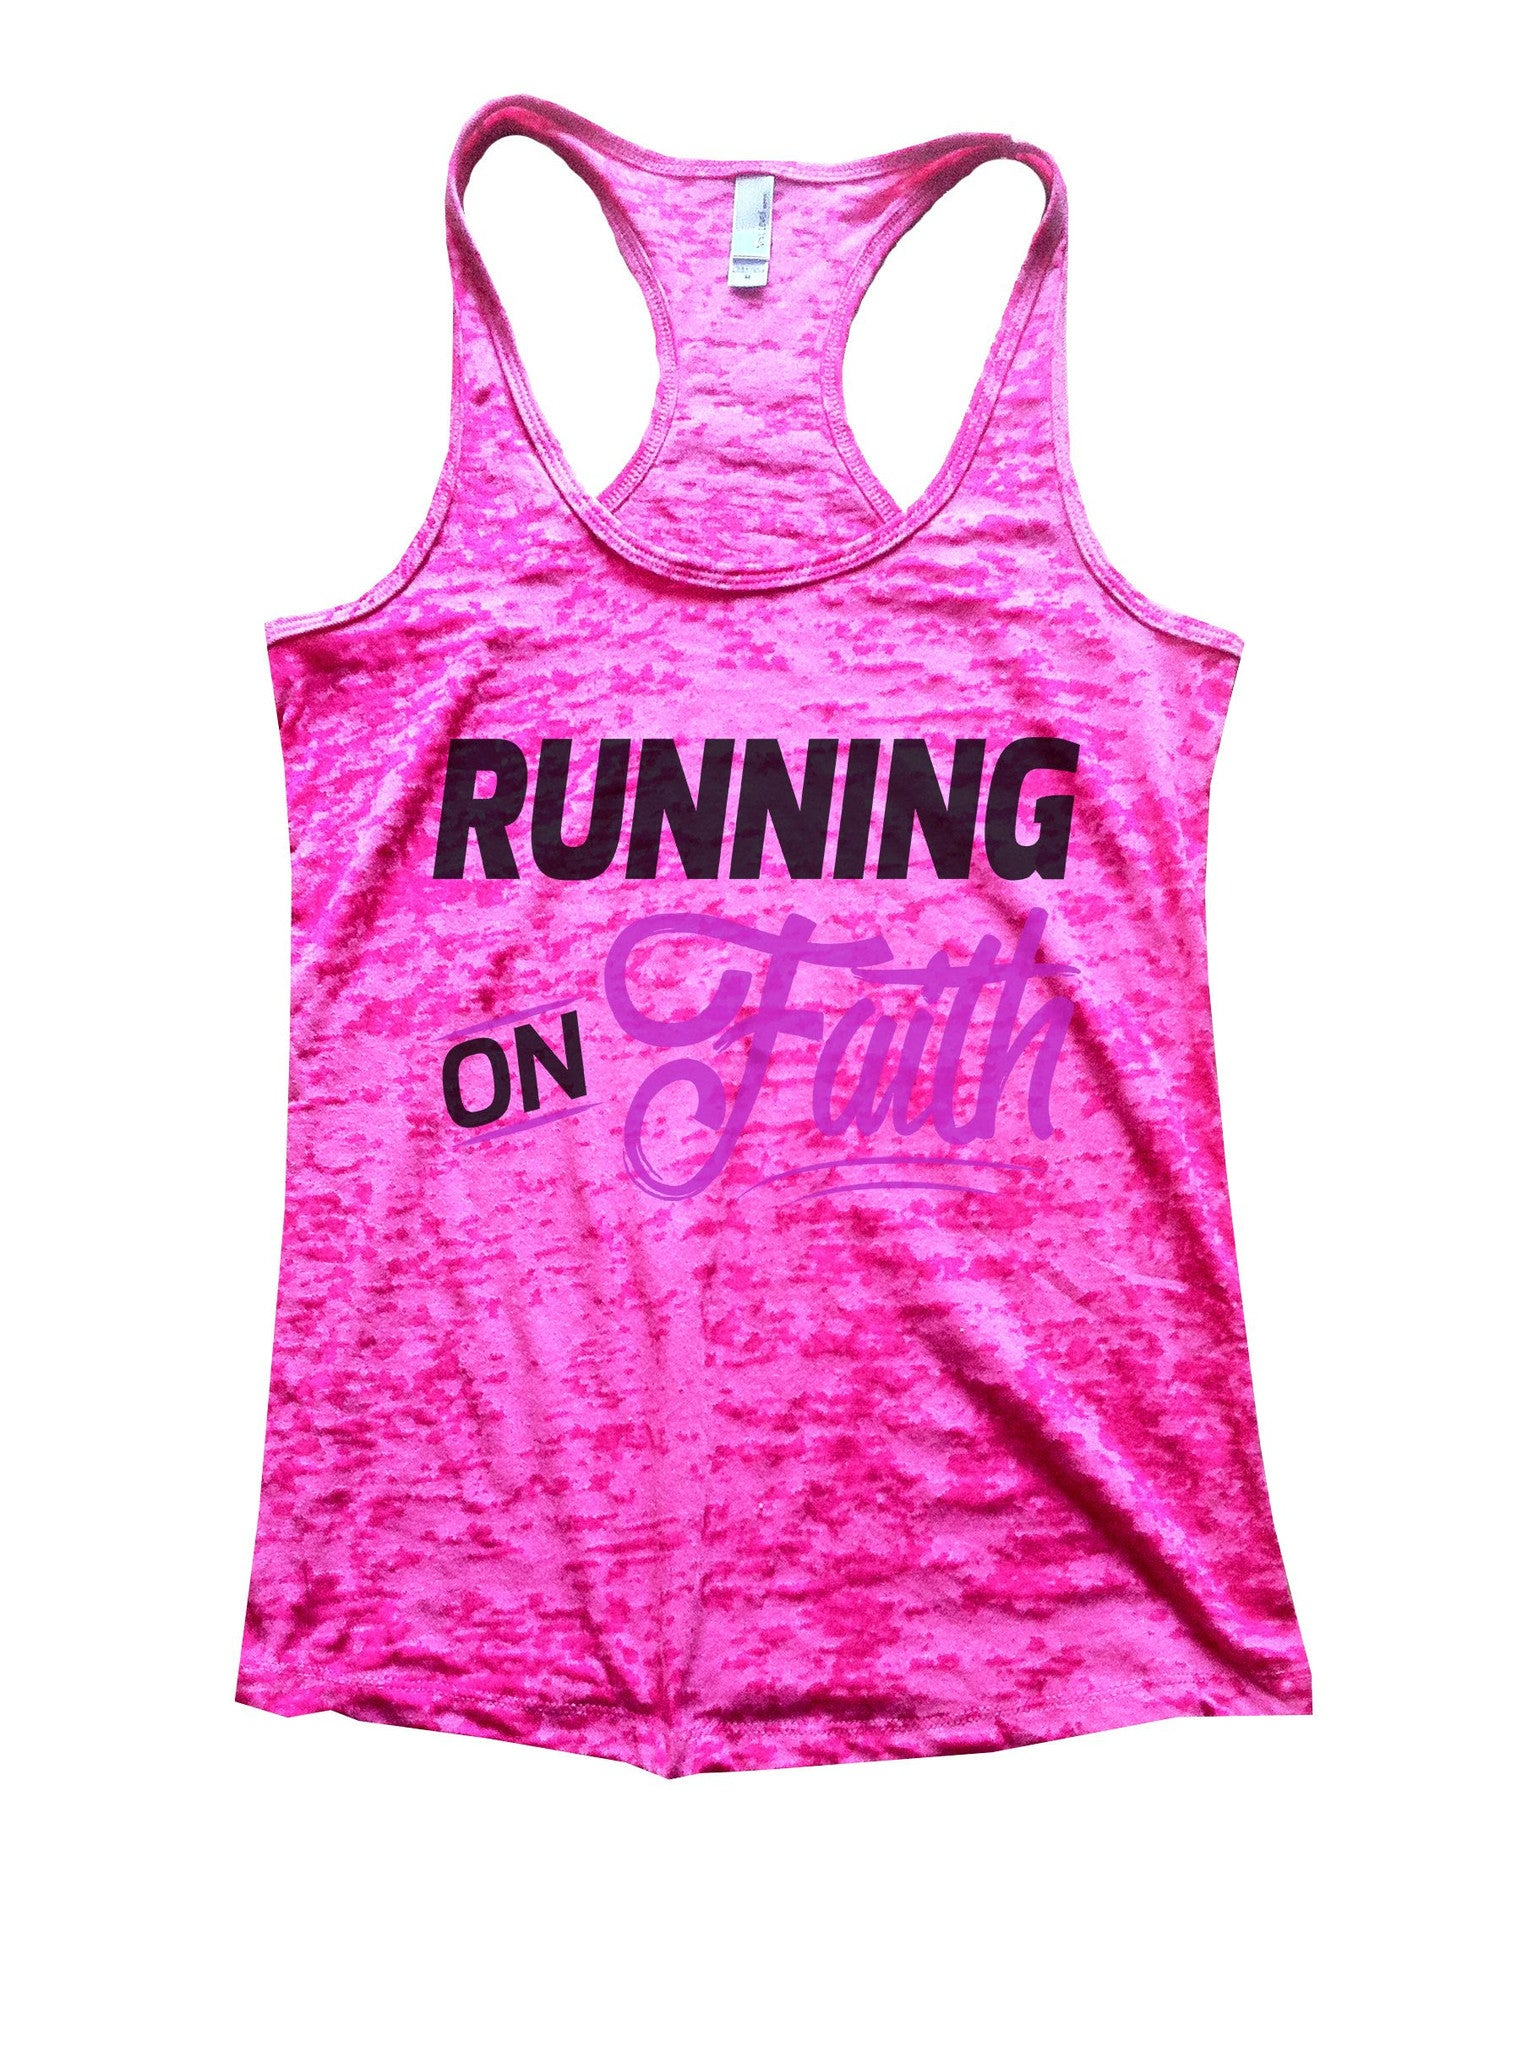 Running On Faith Burnout Tank Top By BurnoutTankTops.com - 1073 - Funny Shirts Tank Tops Burnouts and Triblends  - 5